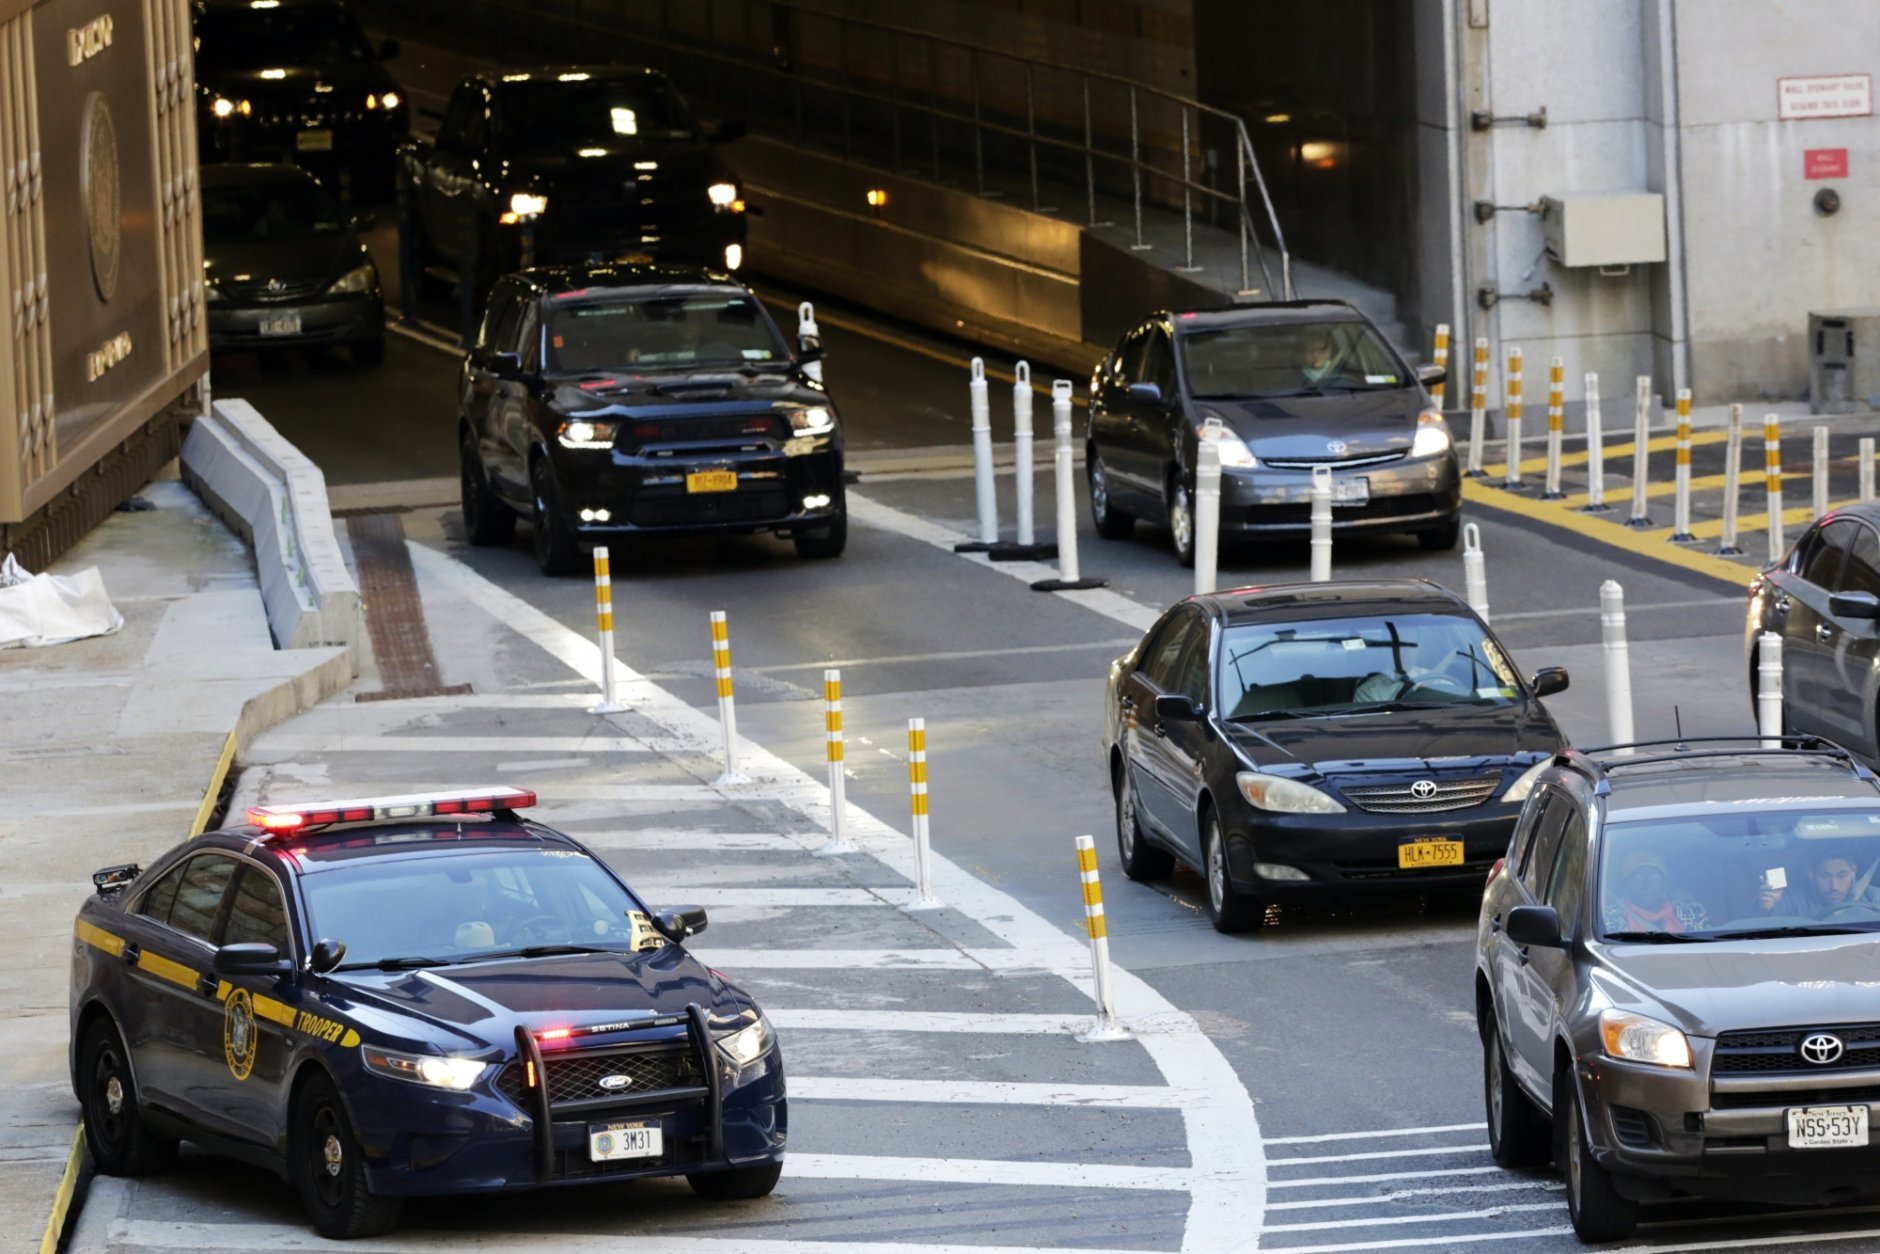 A New York state police car is staged at the Hugh Carey Tunnel, Thursday, Oct. 25, 2018, in New York. Gov. Andrew Cuomo has increased security at vital infrastructure locations following the delivery of a series of pipe bombs to New Yorkers. (AP Photo/Mark Lennihan)